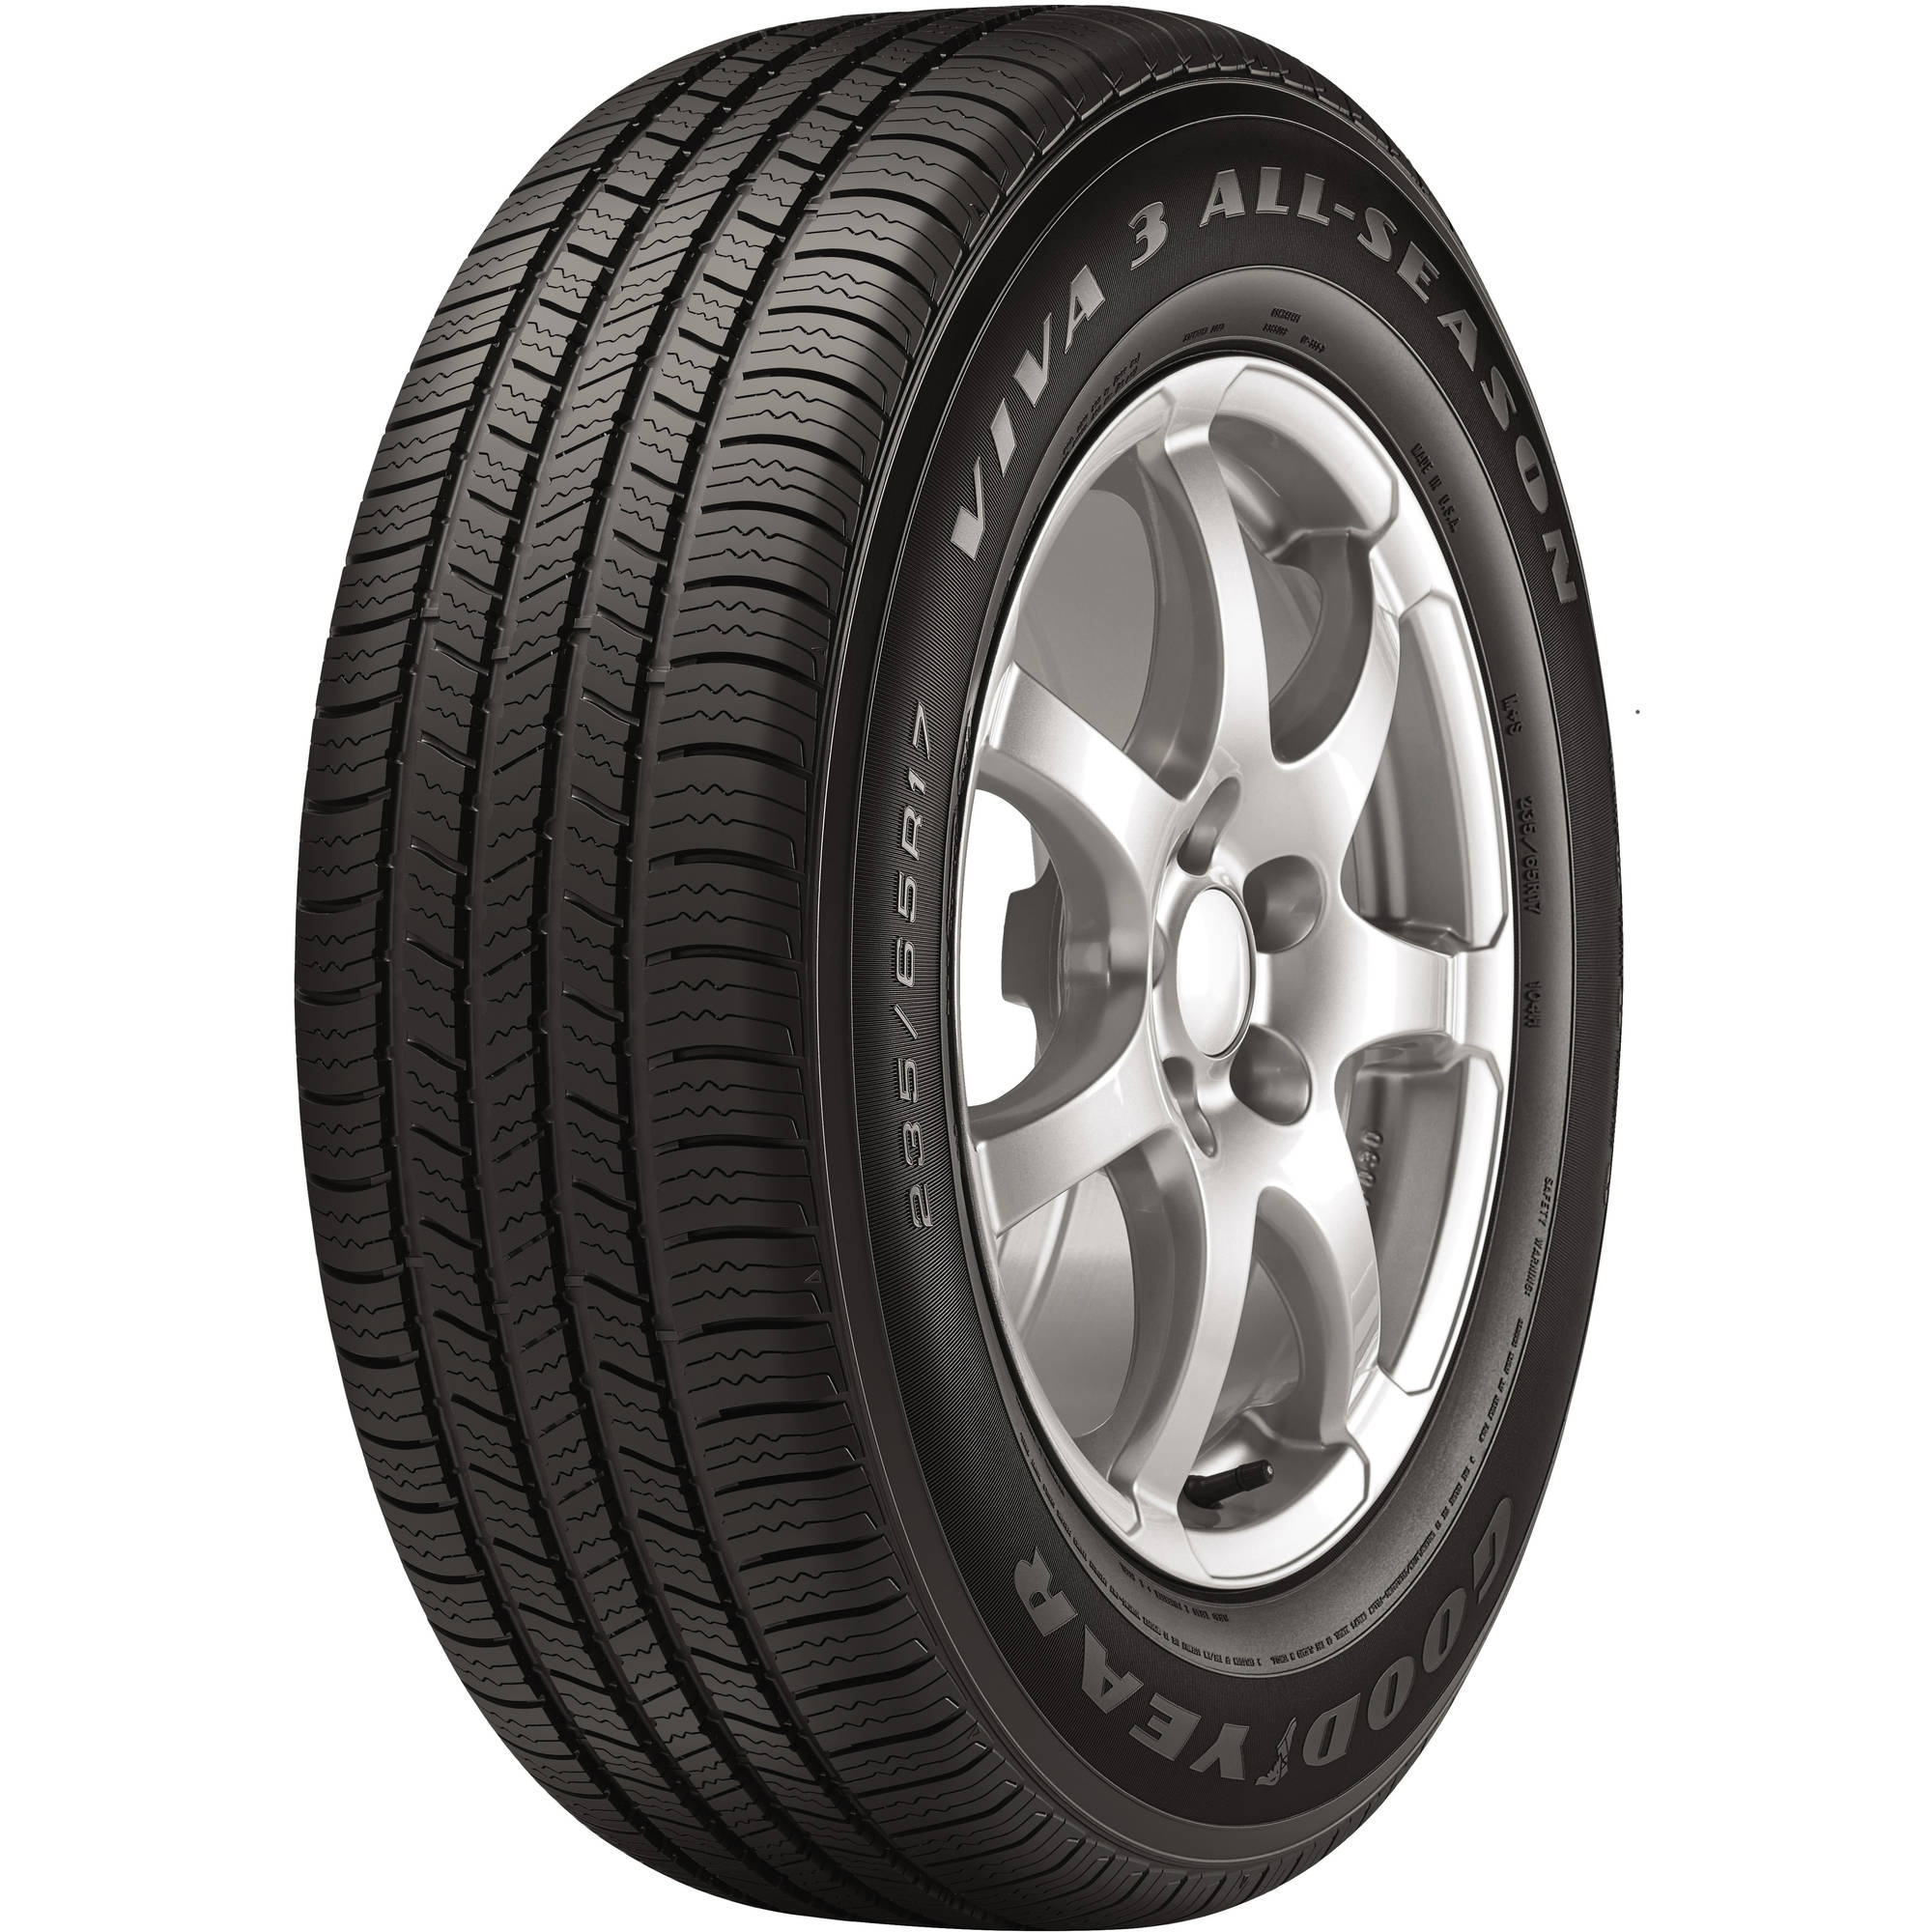 Goodyear Viva 3 All-Season Tire 235/65R17 104H